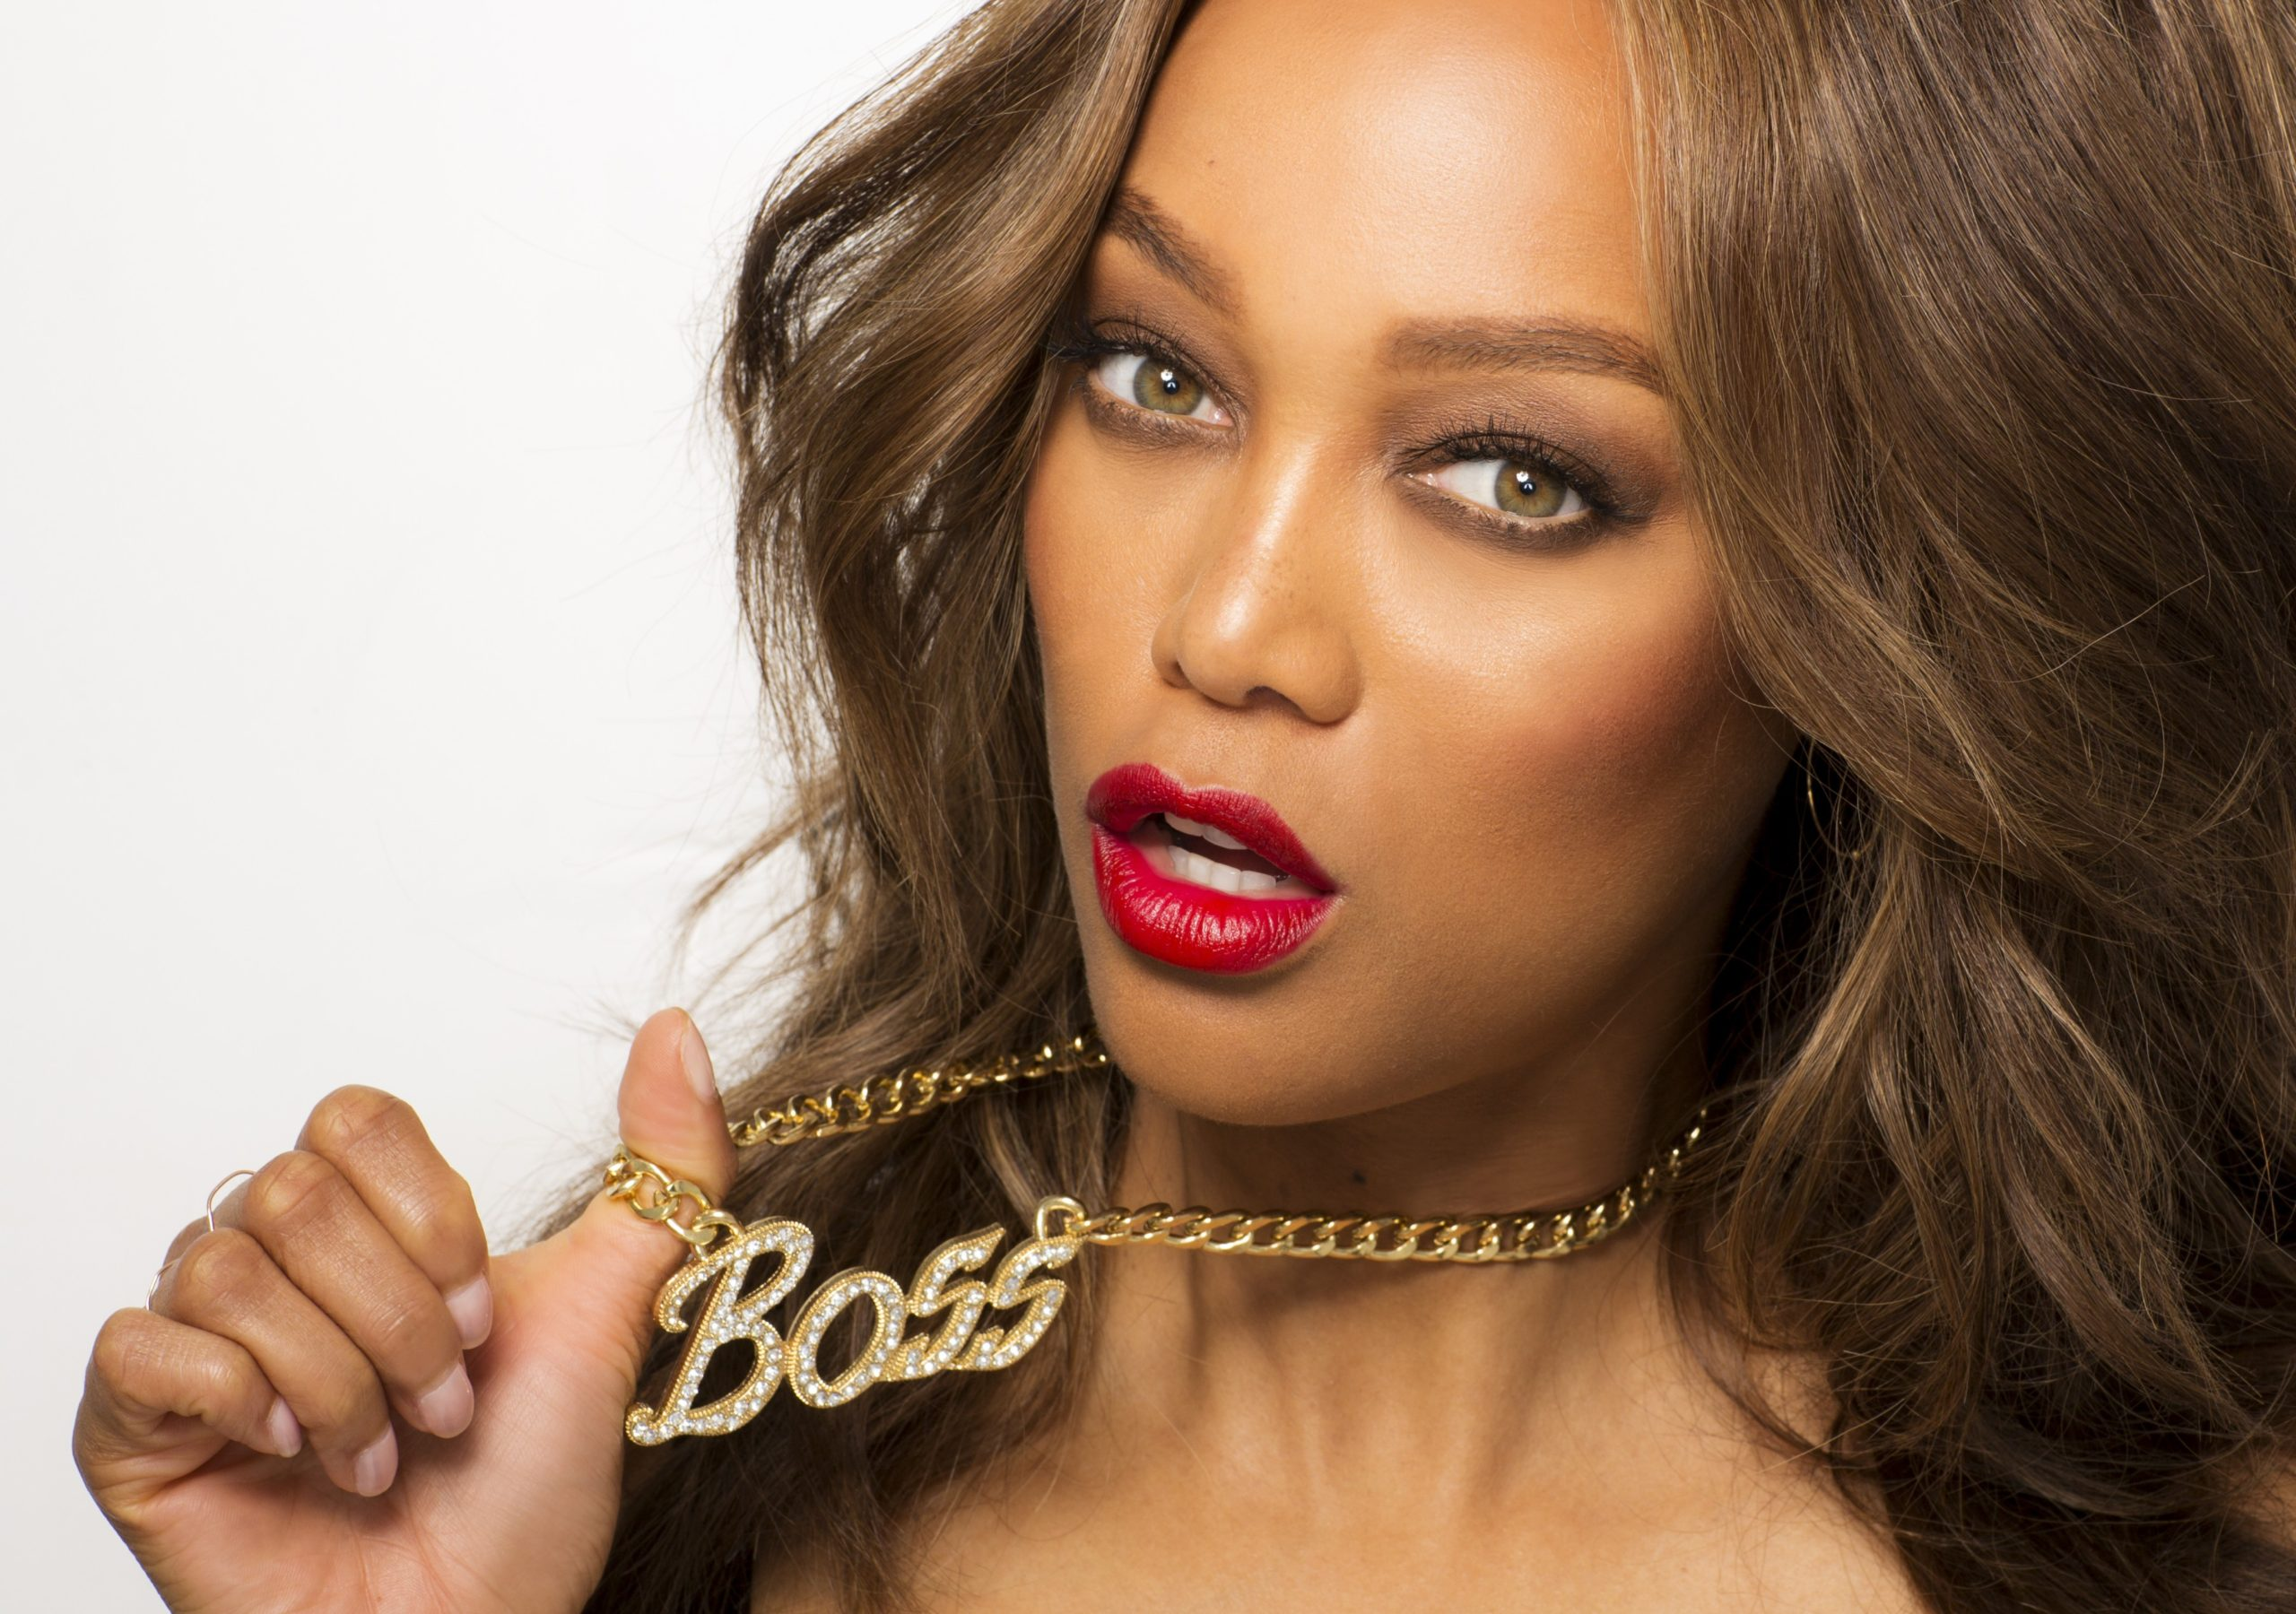 Tyra Banks Hot Red Lips scaled - Tyra Banks Hot Red Lips